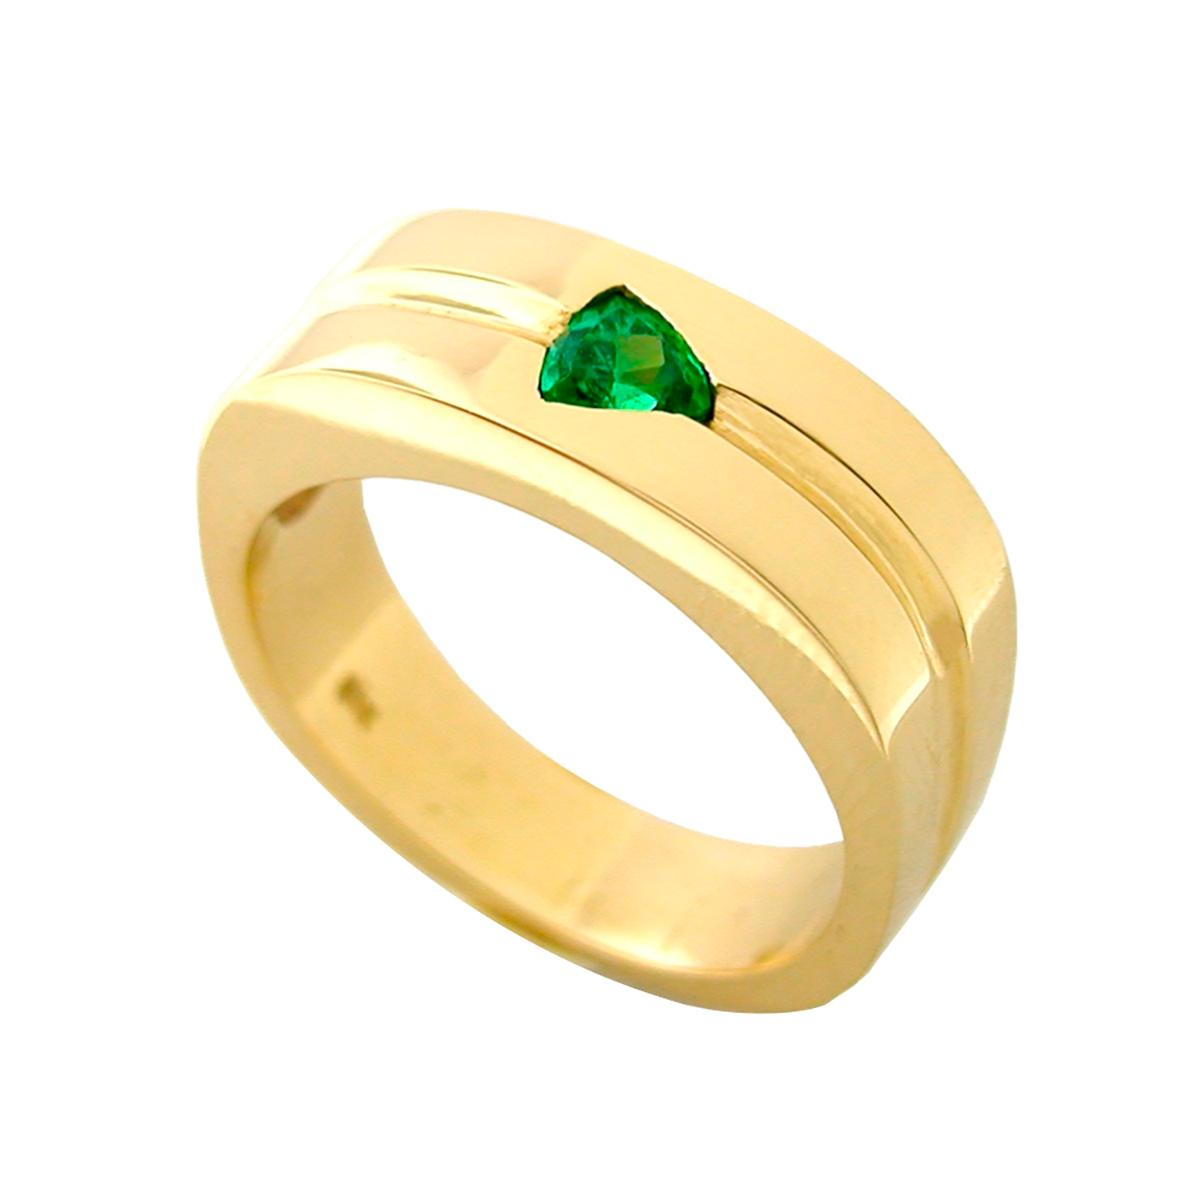 18k-yellow-gold-band-with-triangle-cut-emerald